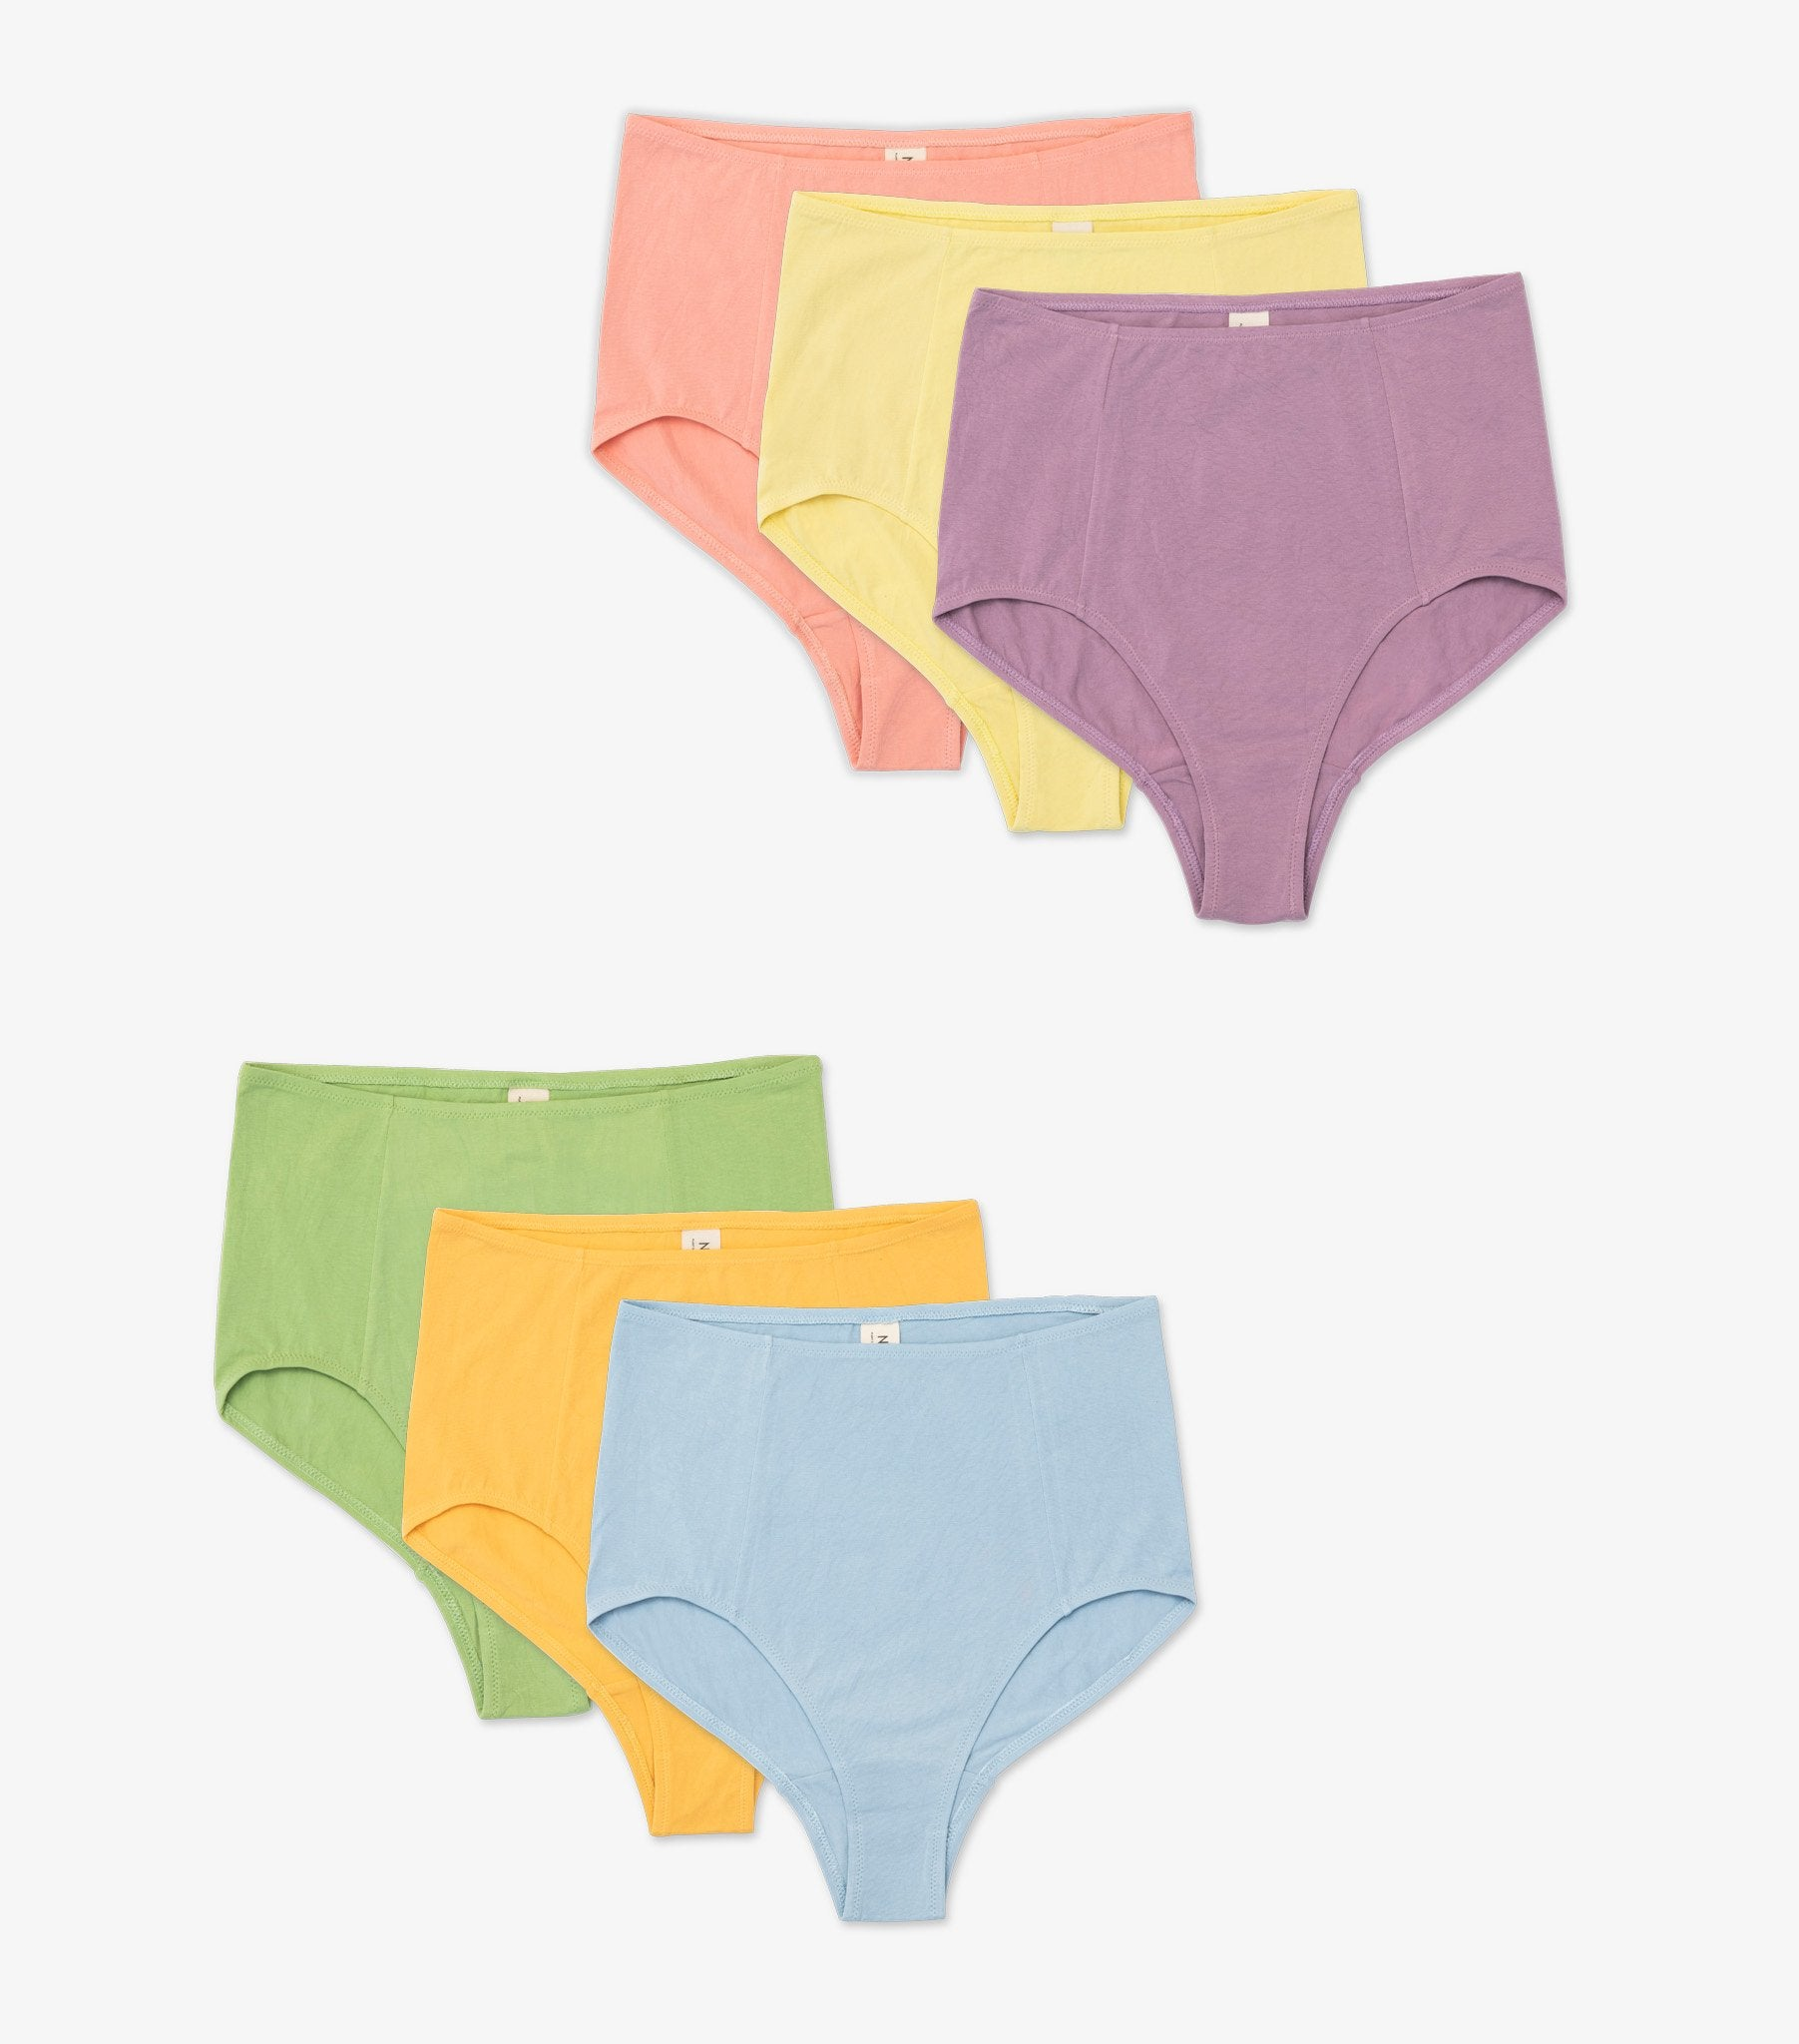 3 Pack of High Waisted Briefs - Organic